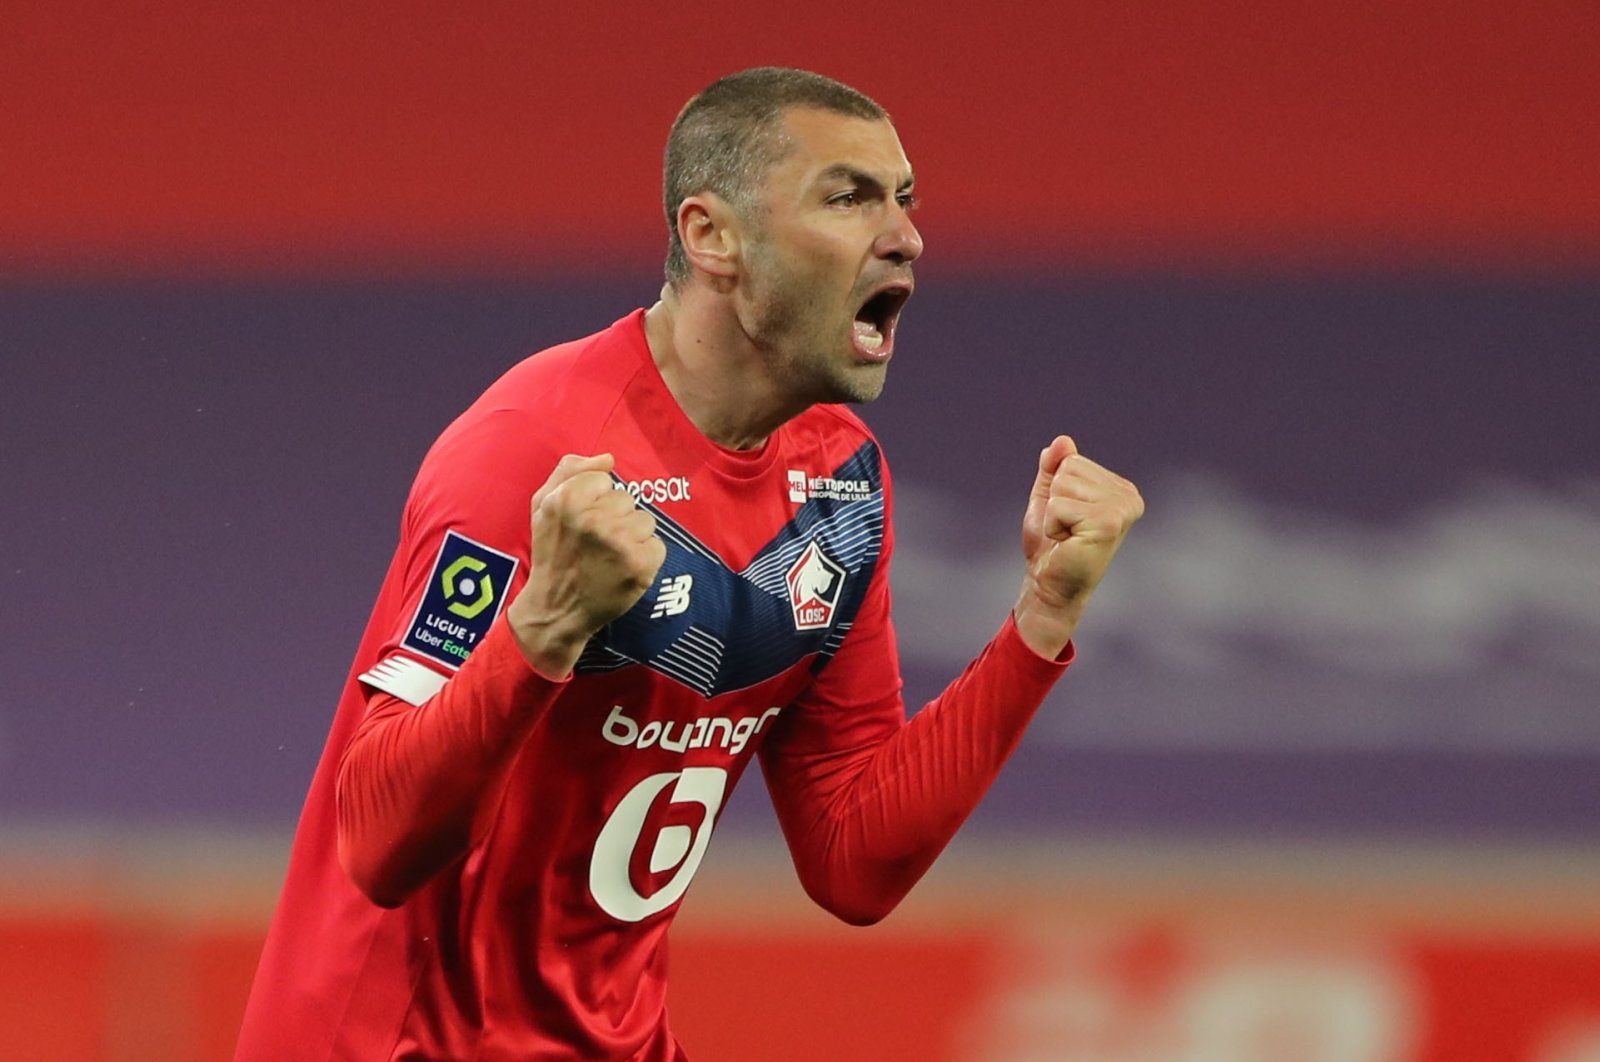 Lille's Turkish Forward Burak Yilmaz celebrates a goal againstNice atStade Pierre-Mauroy, Lille, France, May 1, 2021. (Reuters Photo)